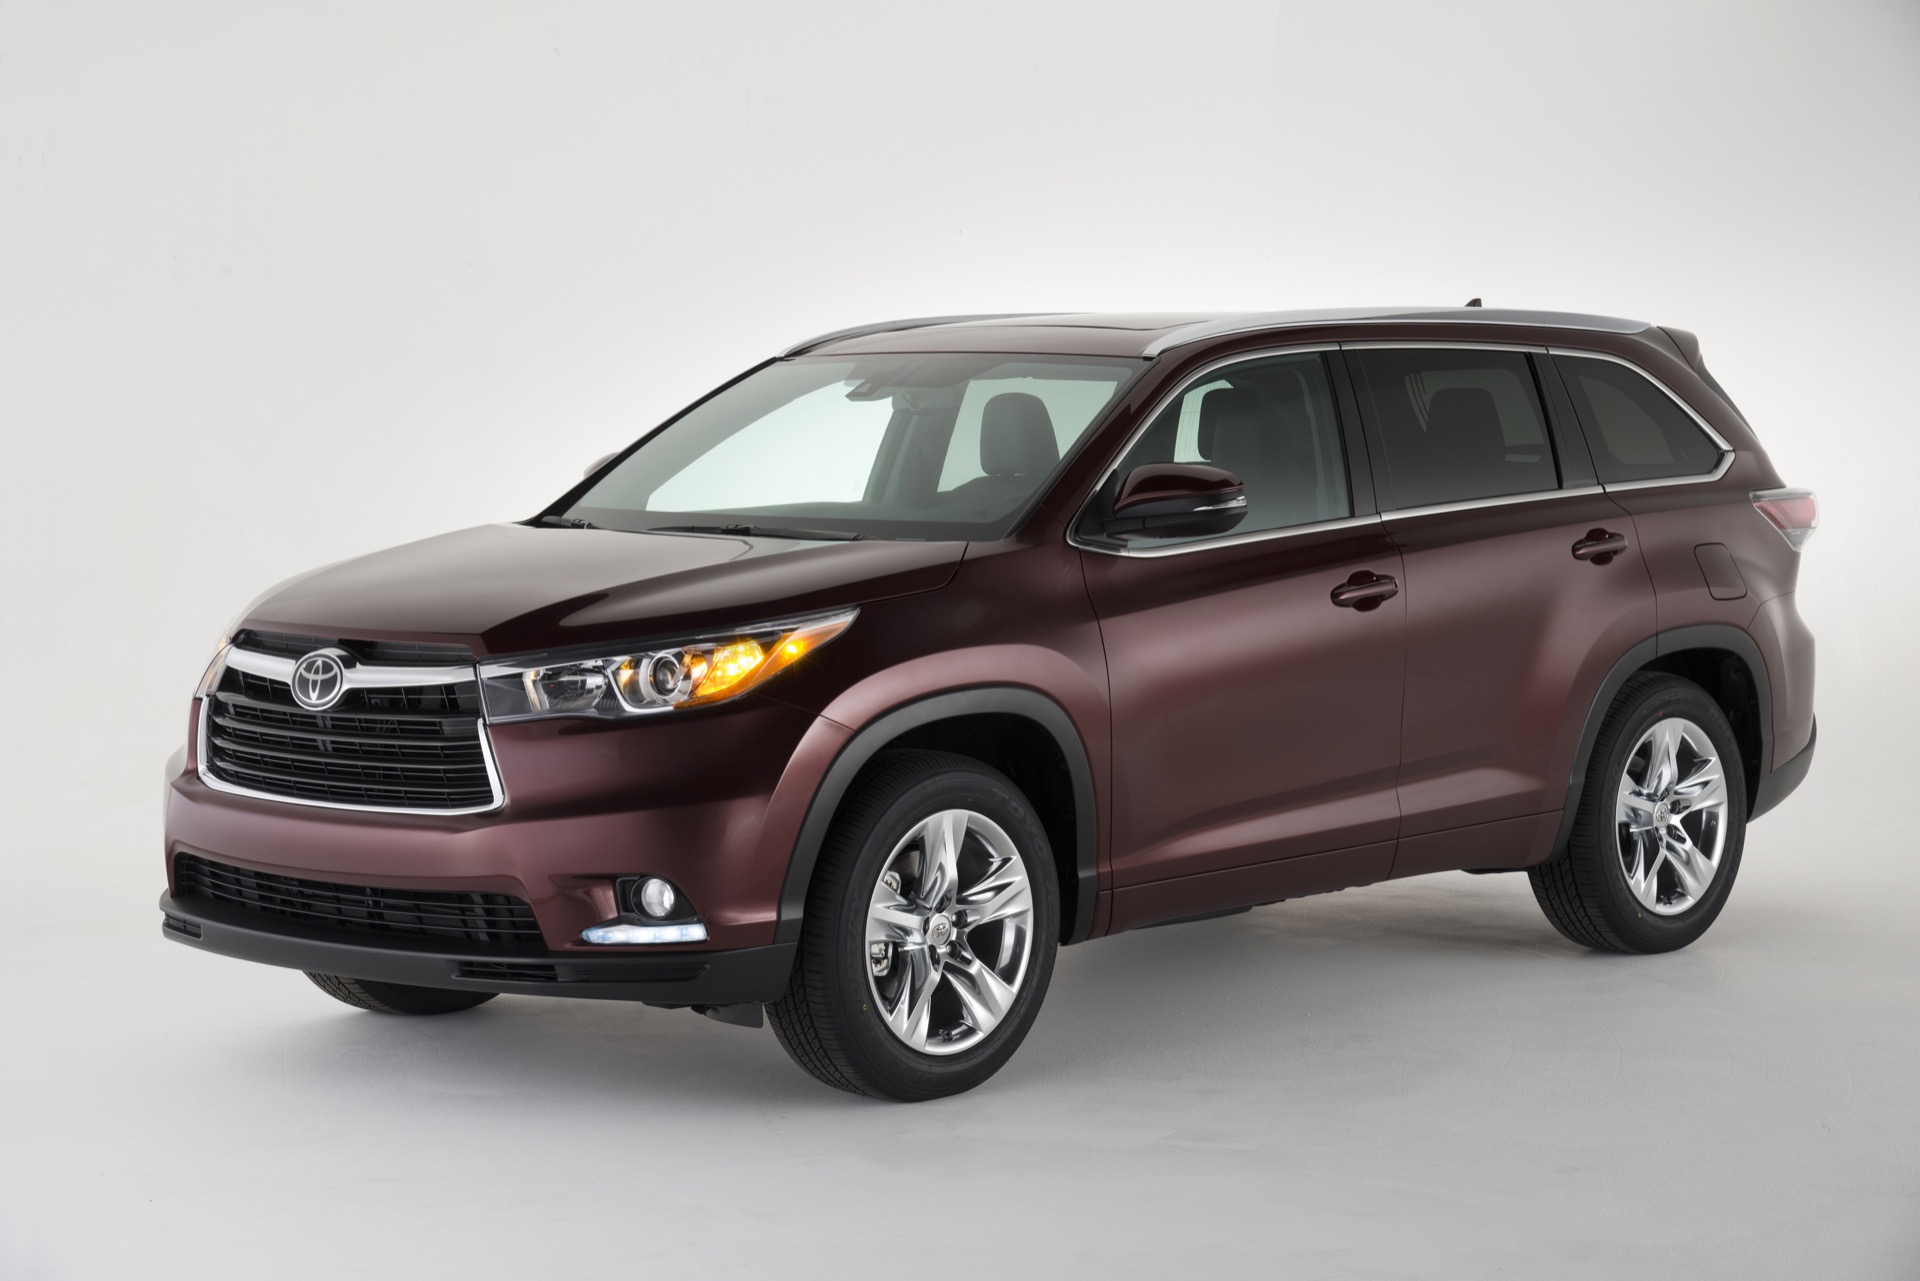 2016 toyota highlander features review the car connection. Black Bedroom Furniture Sets. Home Design Ideas